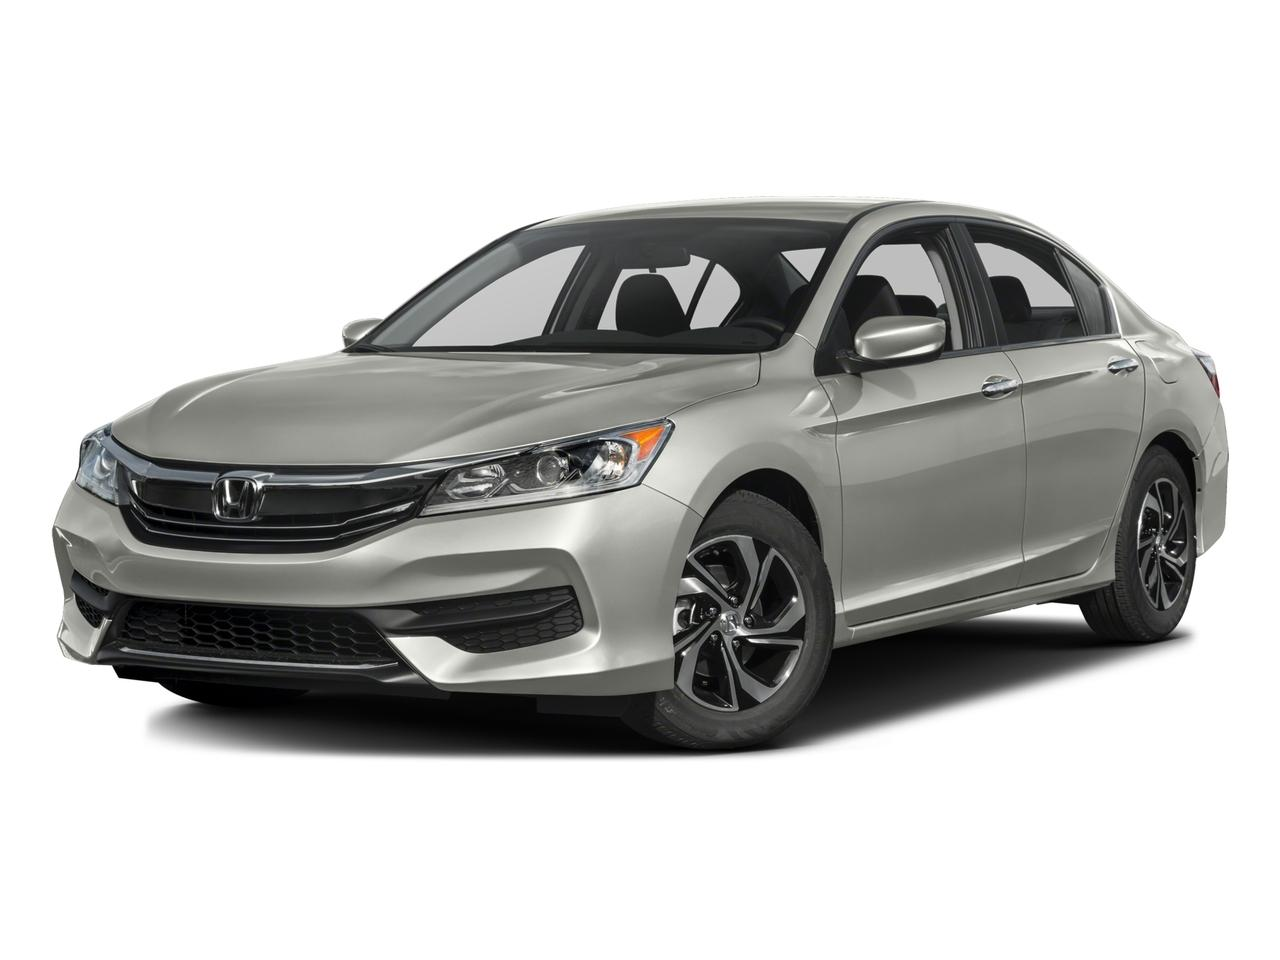 2016 Honda Accord Sedan Vehicle Photo in Rockville, MD 20852